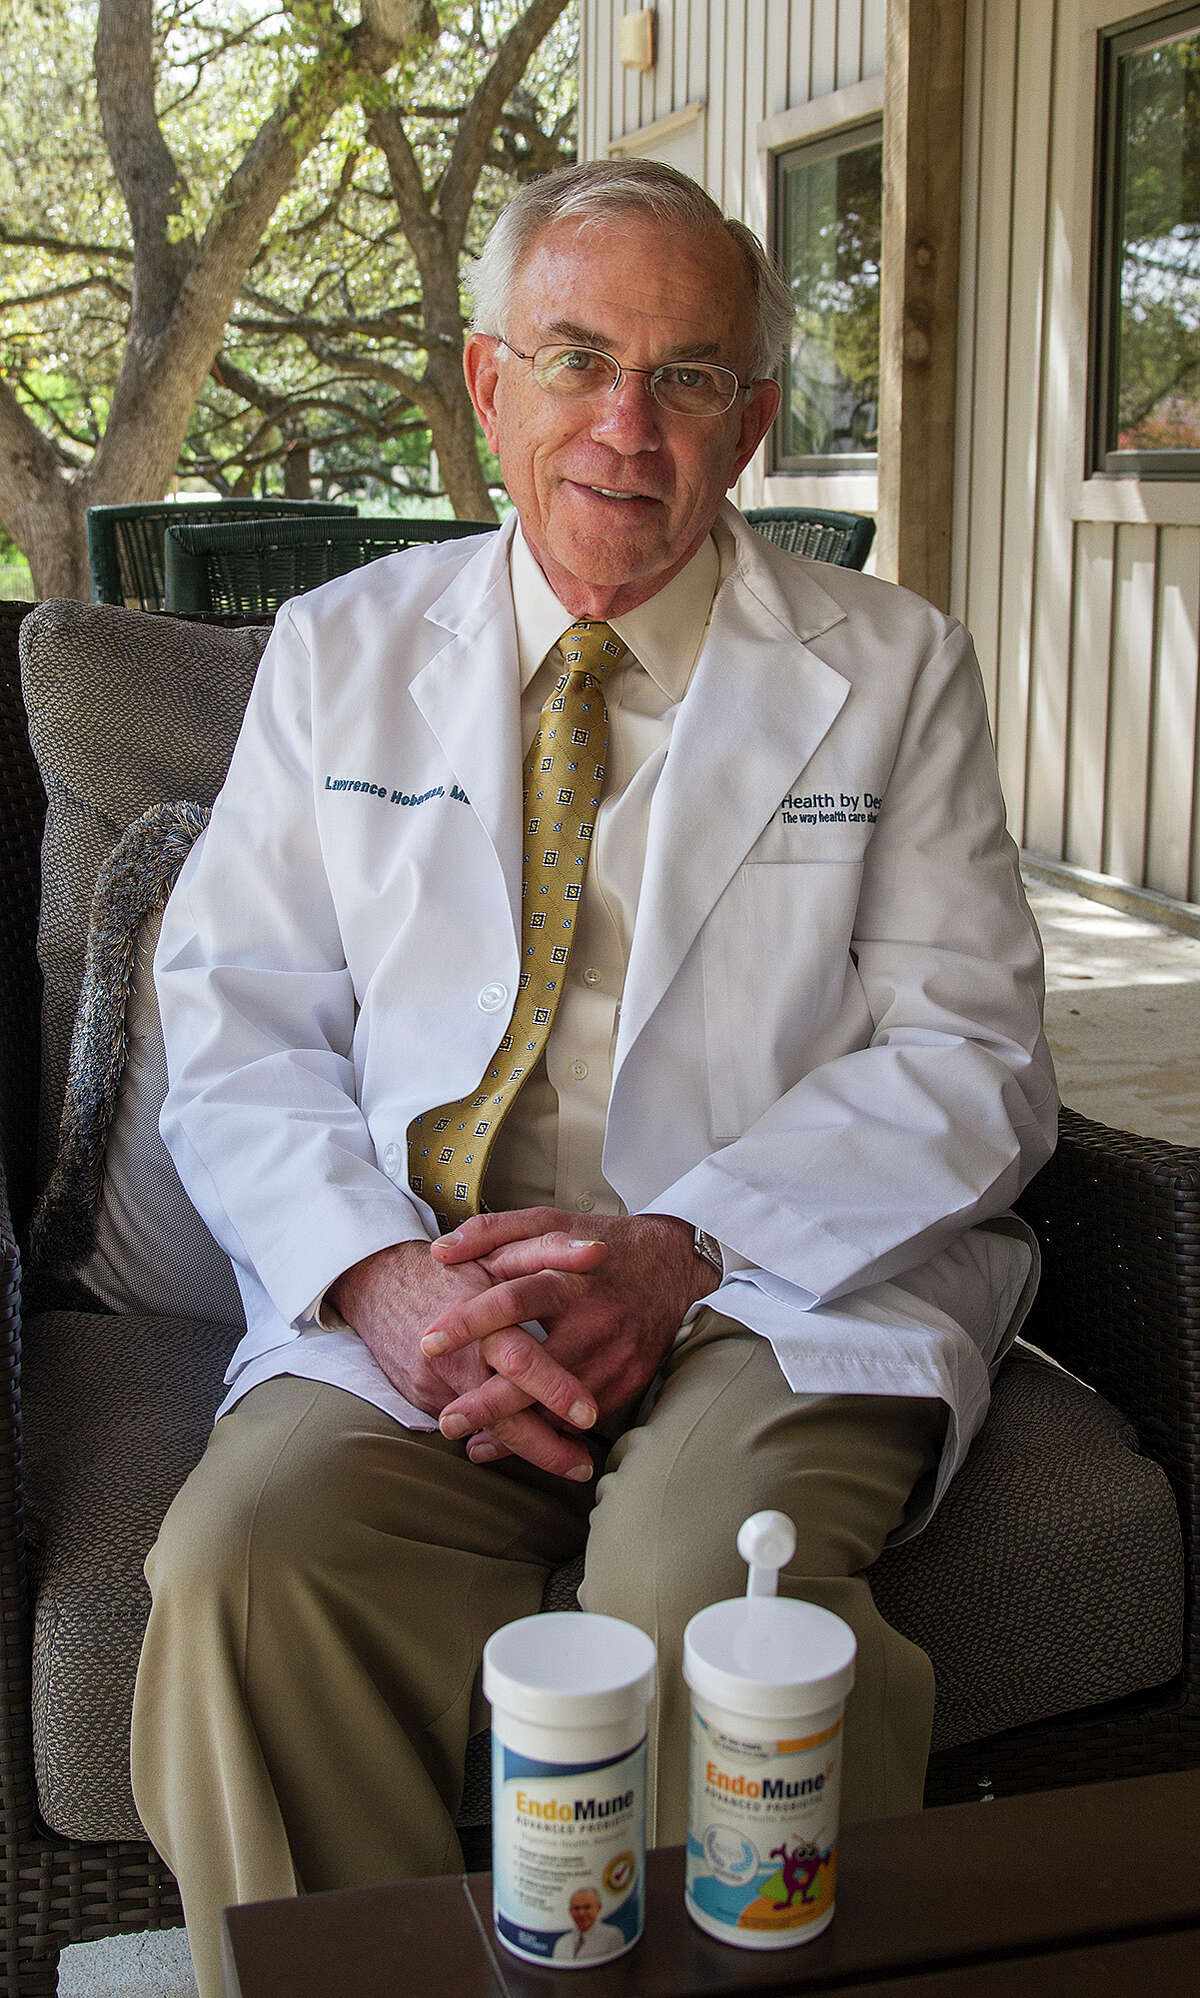 Dr. Lawrence Hoberman drove to doctors' offices and independent pharmacies weekly to tout the benefits of the over-the-counter product and how it might restore balance to the digestive system.